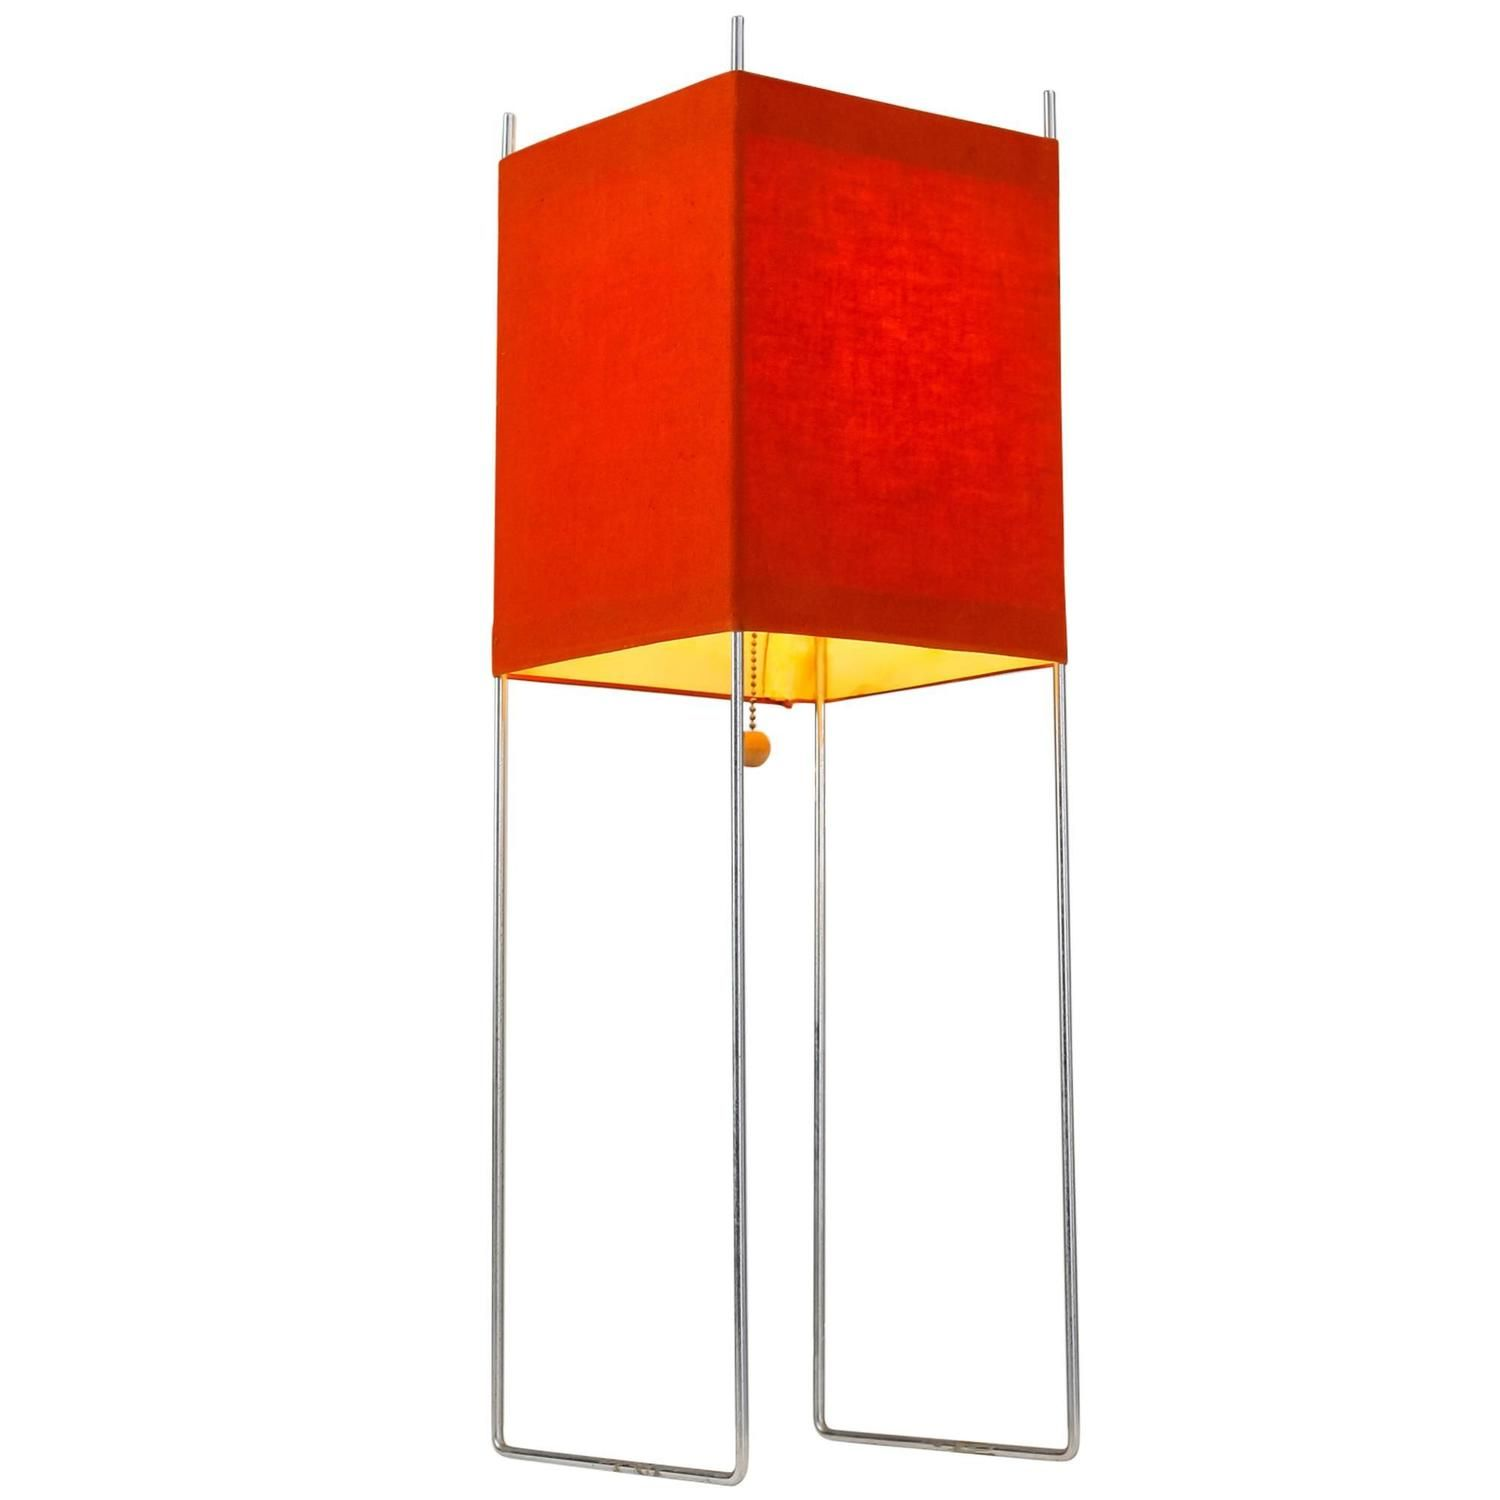 George nelson red kite table or floor lamp usa 1970s red kite george nelson red kite table or floor lamp usa 1970s geotapseo Gallery